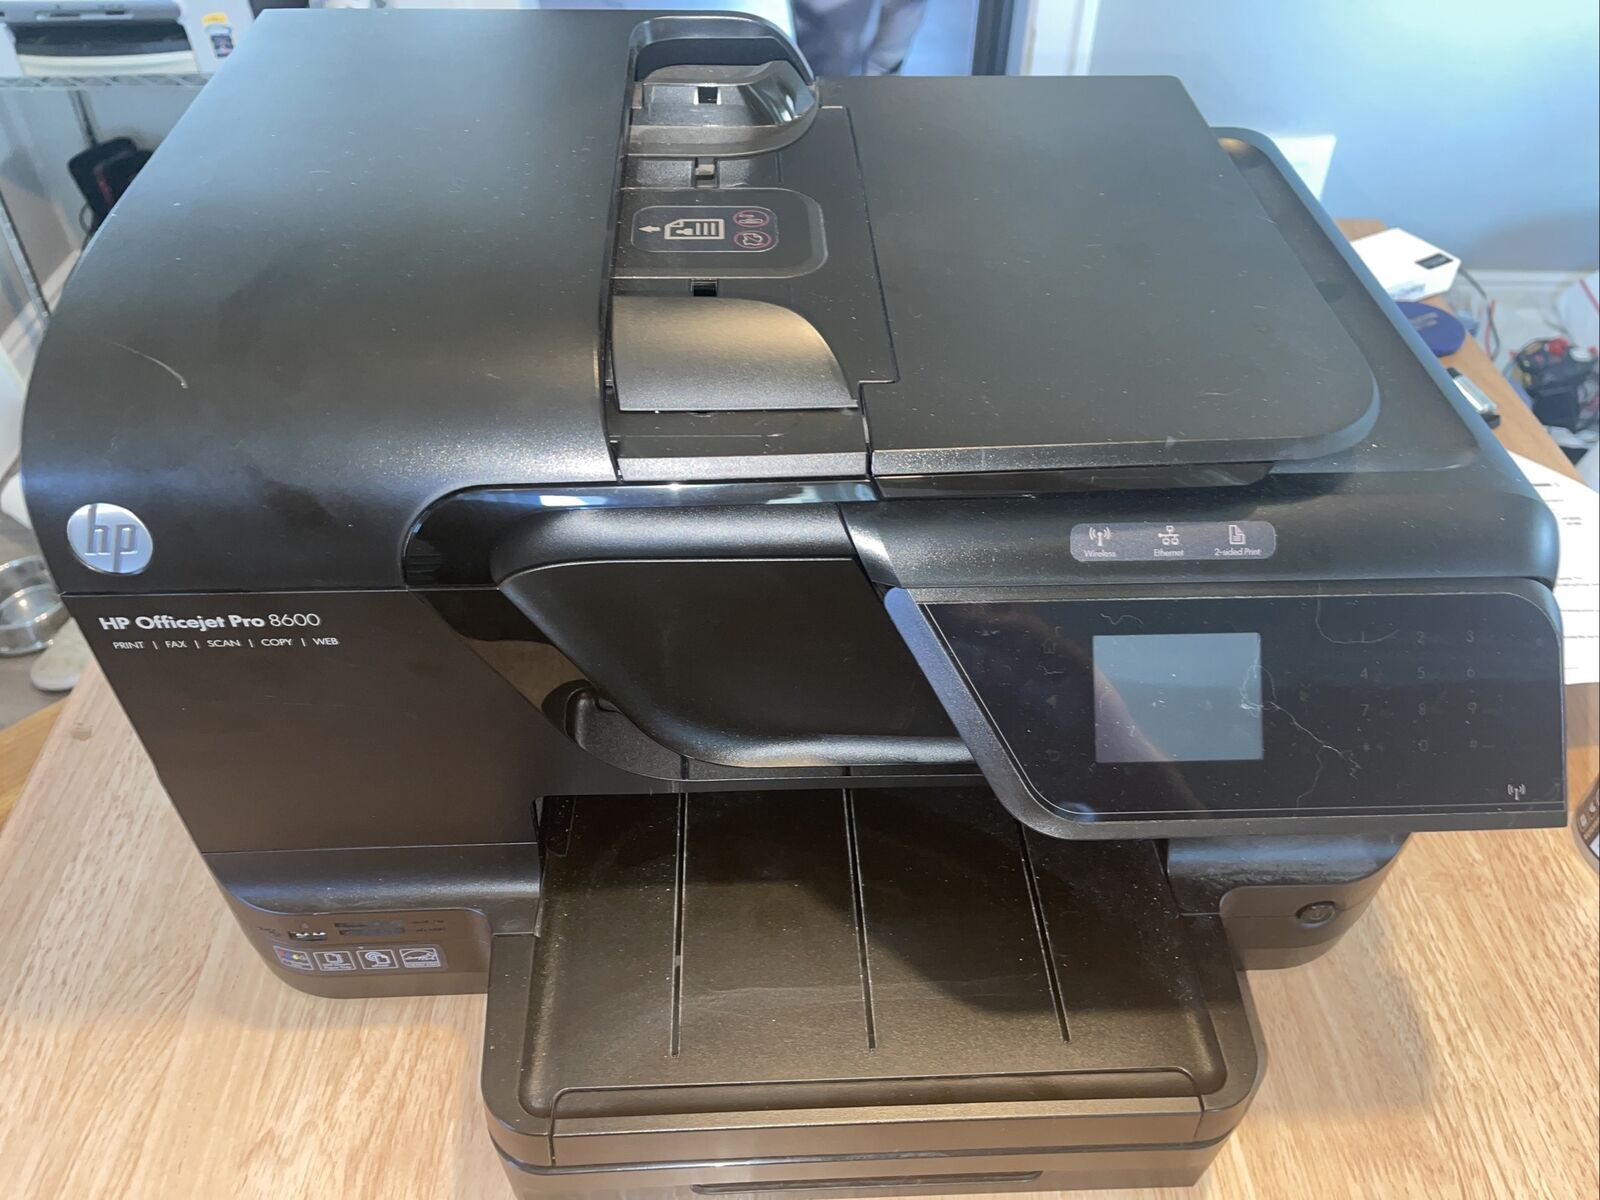 [HP Officejet Pro 8600  Inkjet Scanner  Low page count 1234 Pages